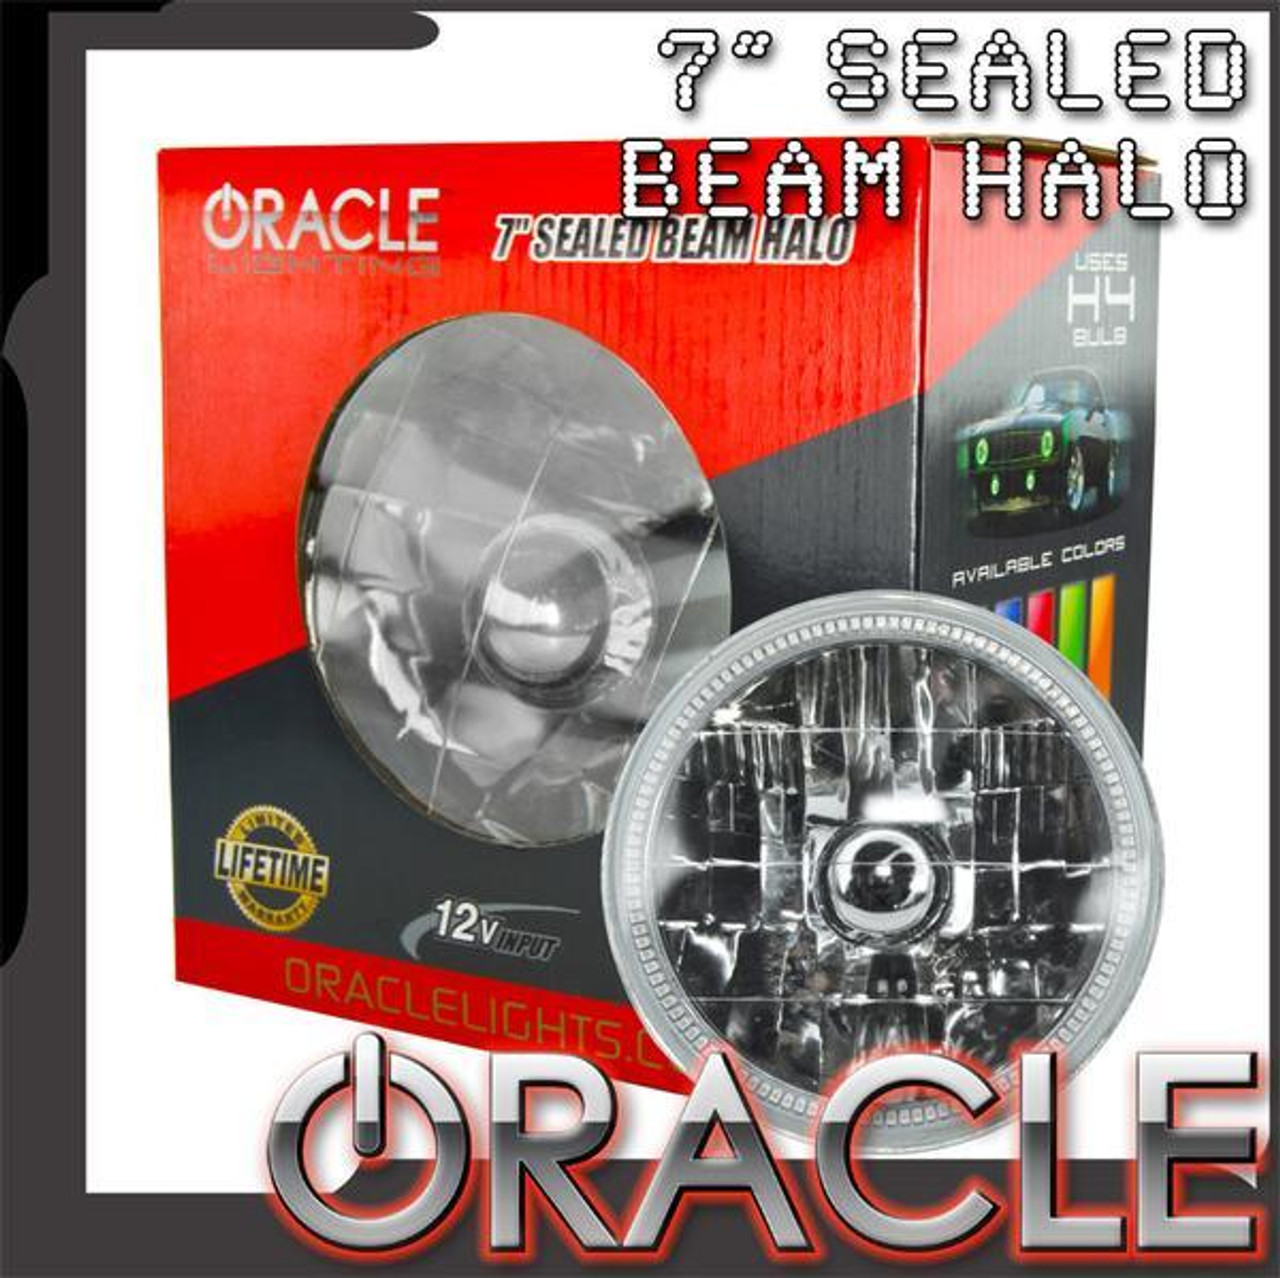 """ORL6905-001, ORACLE PRE-INSTALLED 7"""" H6024/PAR56 SEALED BEAM HALO, White"""